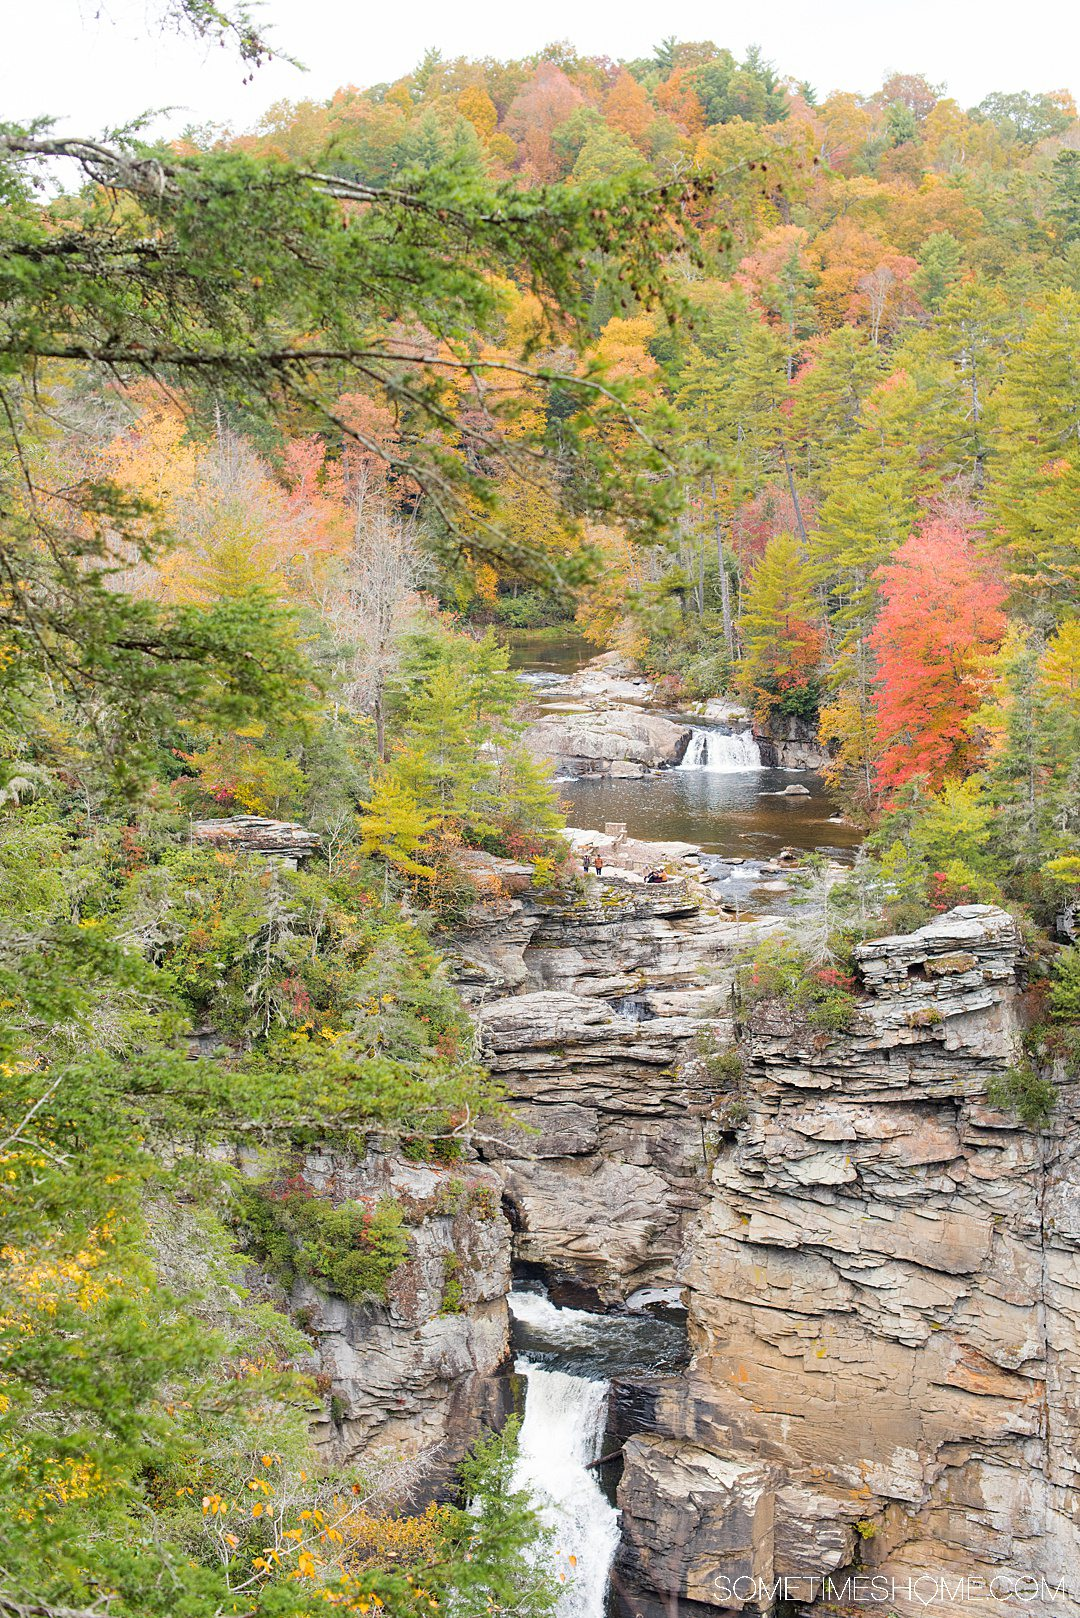 One of the best things to do in the North Carolina mountains is hike! We have your guide to the best hiking near Morganton, NC in Burke County near the Blue Ridge Mountains. Fall colors were at their peak in the Appalachian Mountains range at the time we took this beautiful photography at Linville Falls. #sometimeshome #besthikingnorthcarolina #autumncolors #peakfallleaves #blueridgemountains